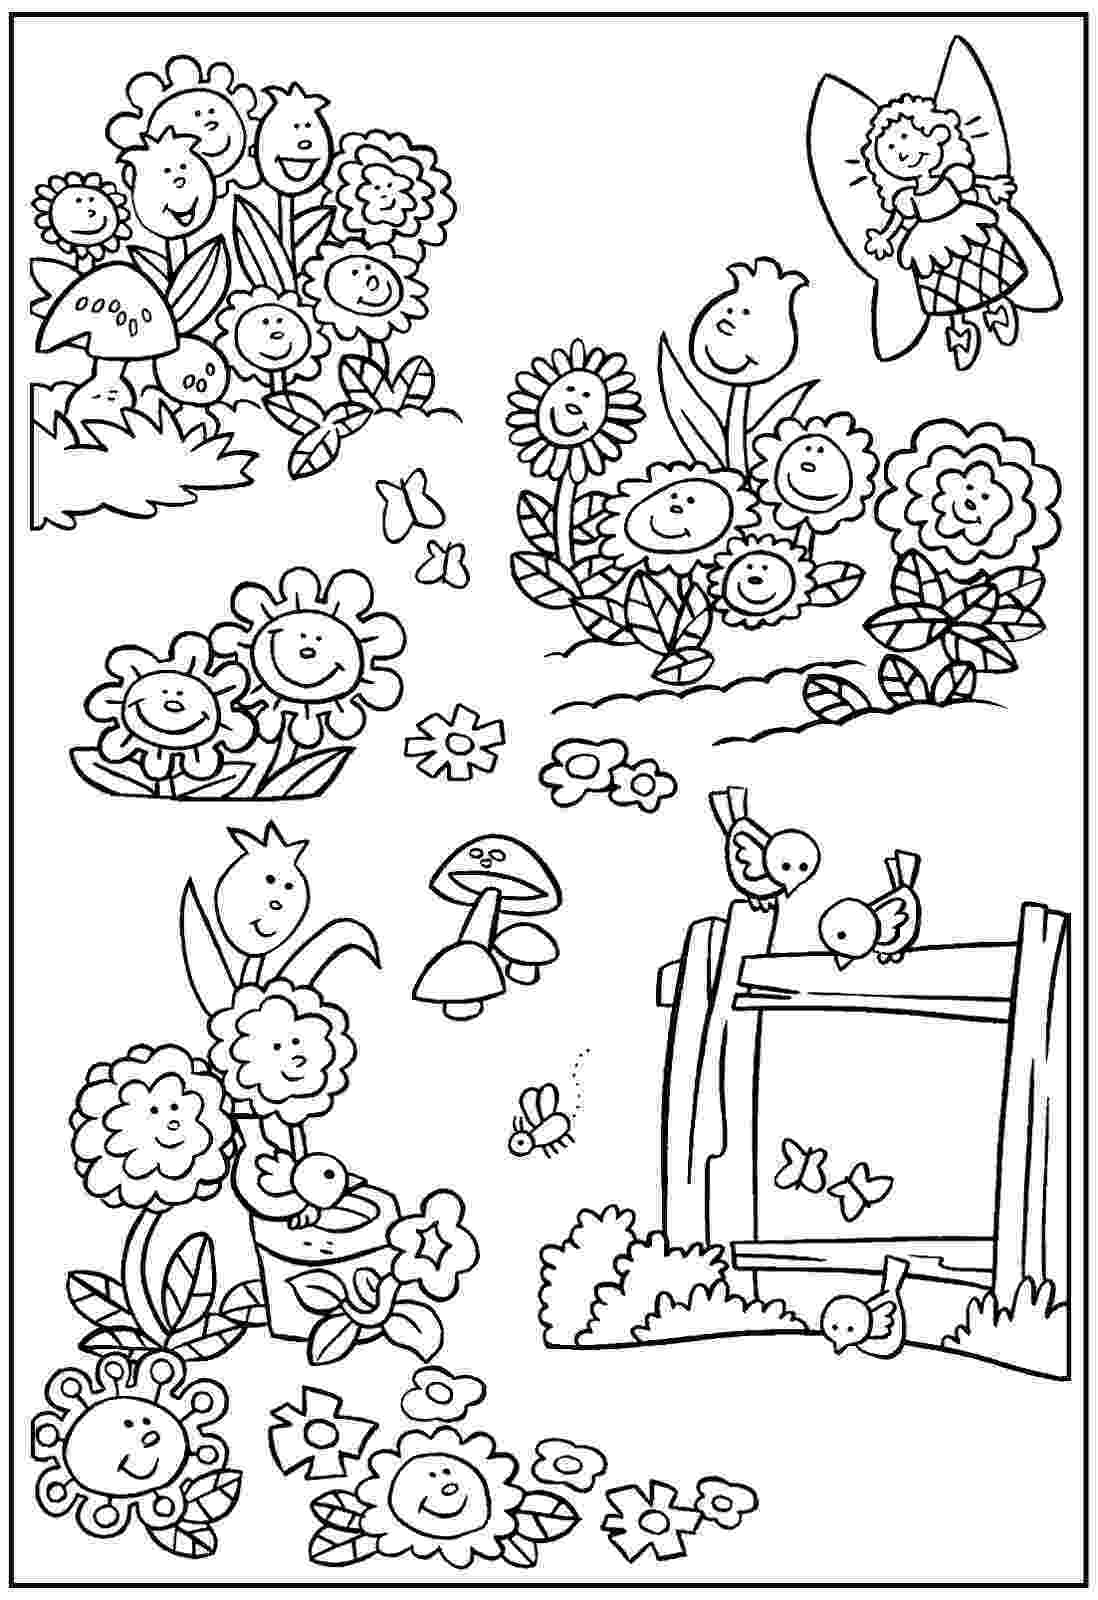 gardening colouring pages flower garden coloring pages to download and print for free colouring pages gardening 1 1